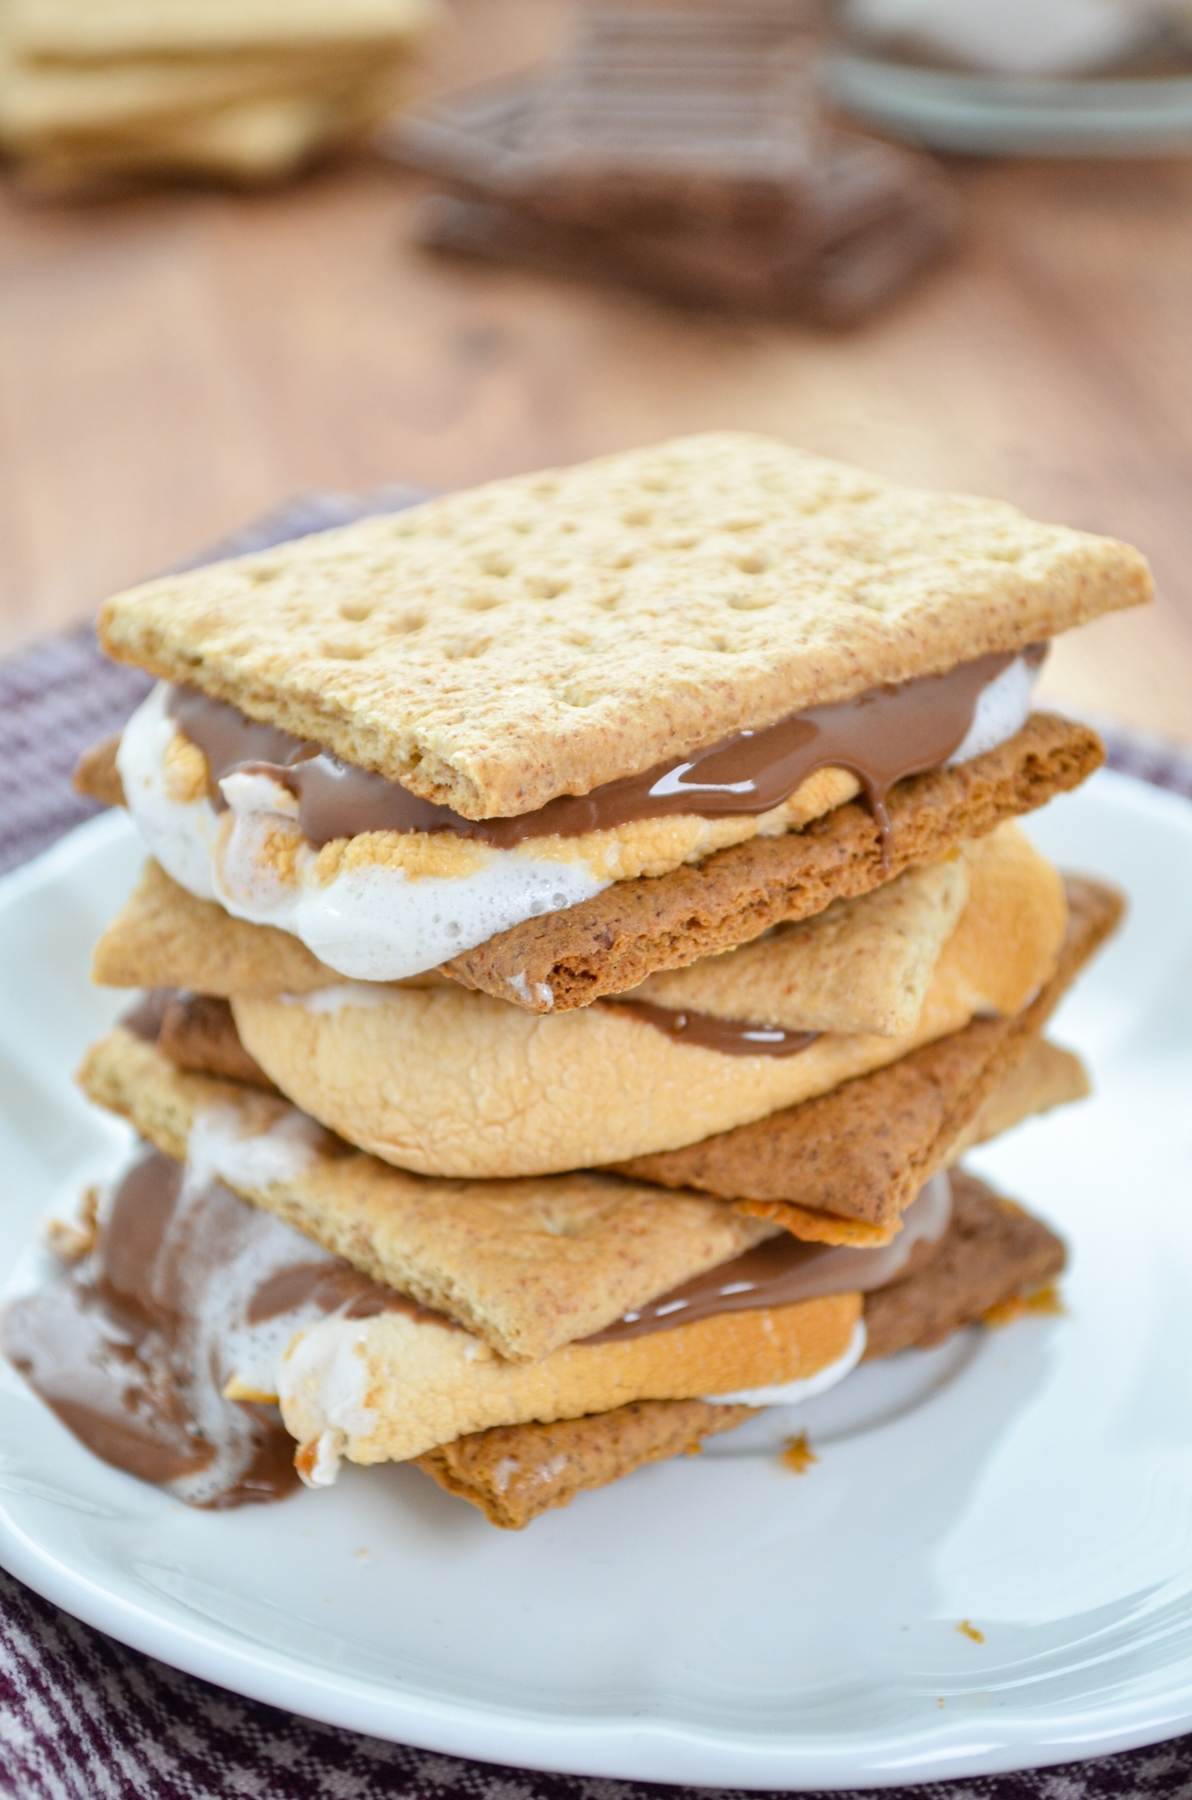 A stack of three s'mores on a white plate.